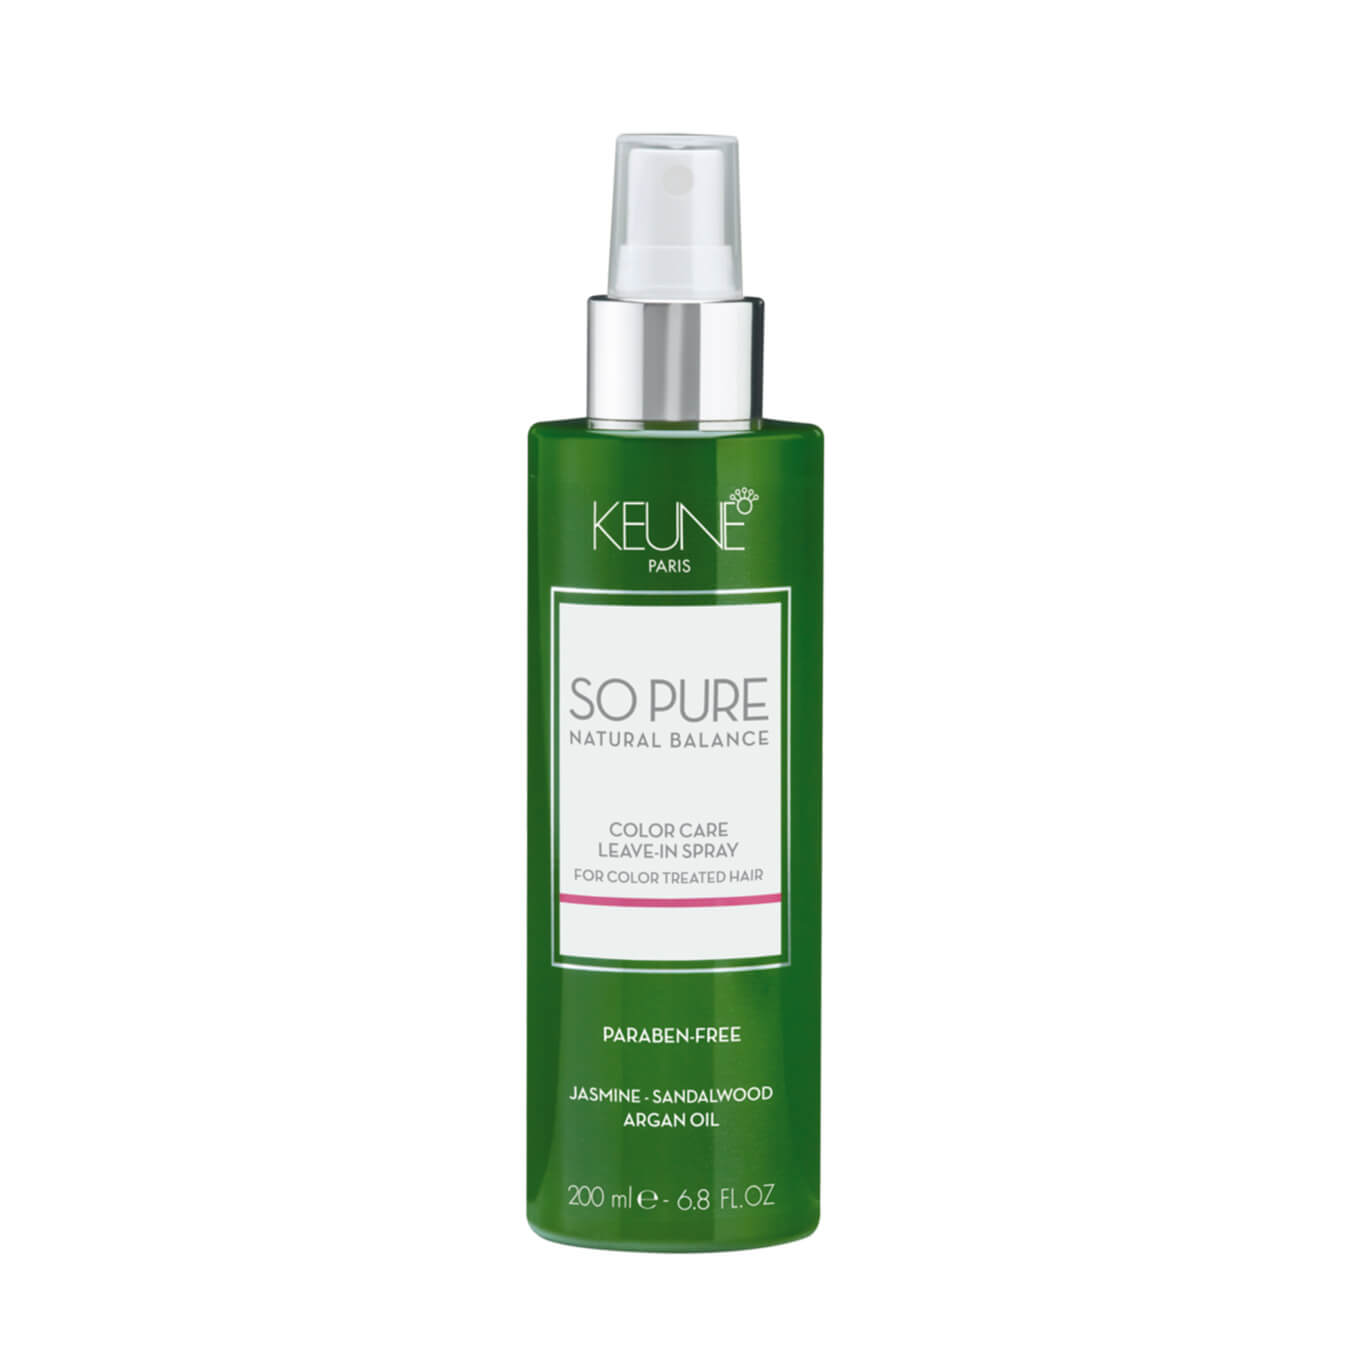 Koop Keune So Pure Color Care Leave-in Spray 200ml